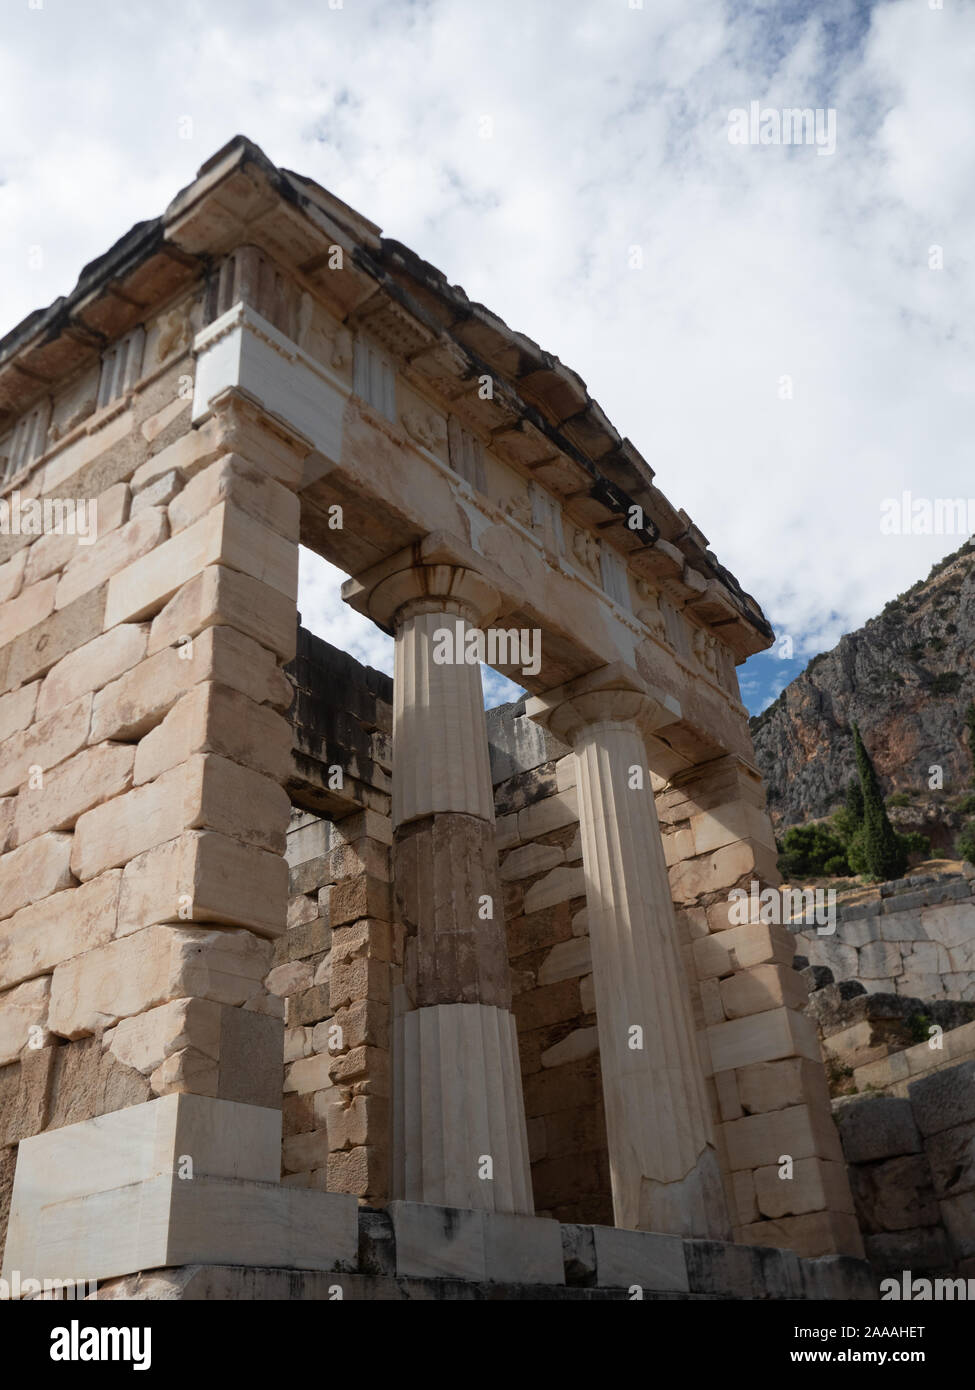 The rebuilt Athenian Treasury with doric columns and stone block construction at Delphi in Greece. Stock Photo